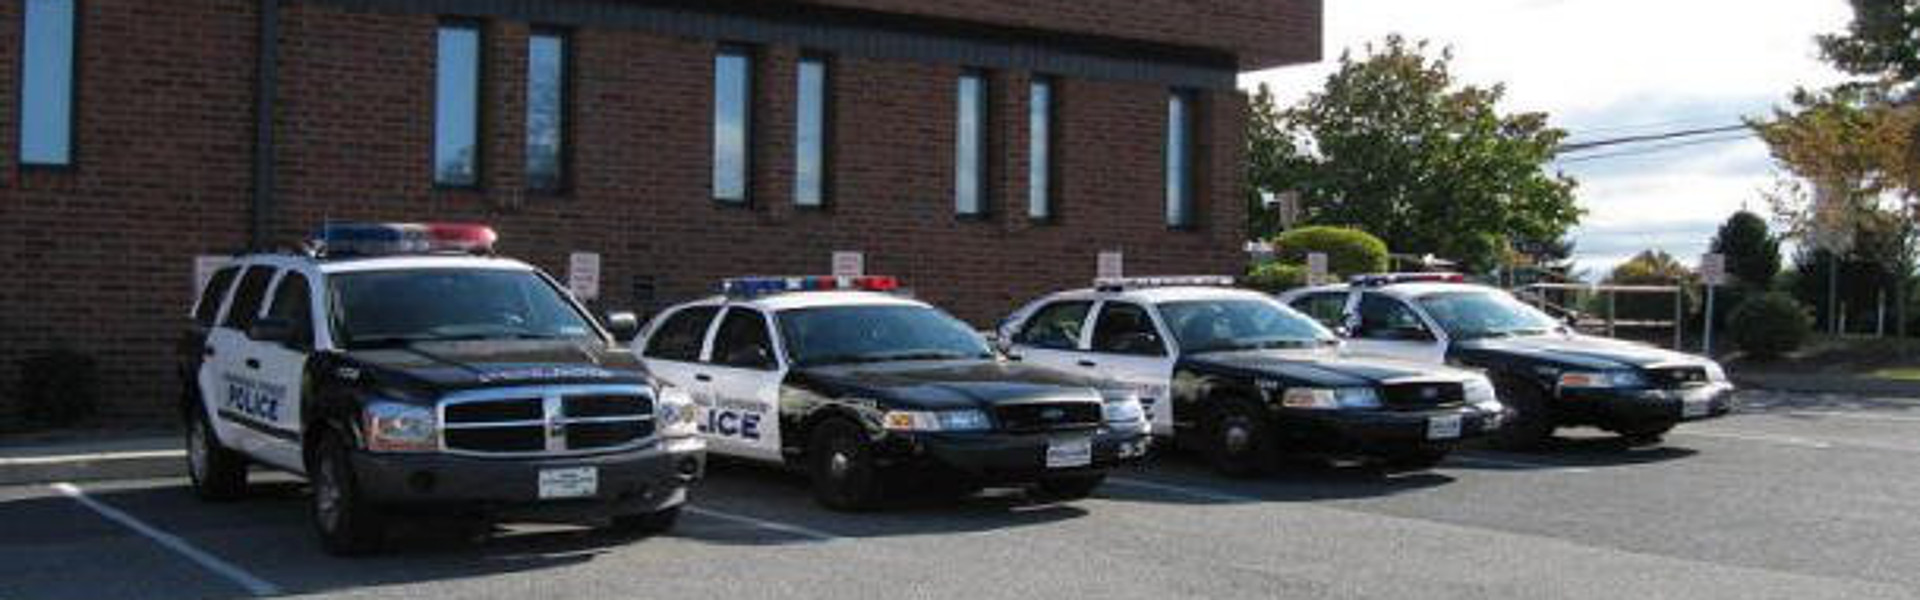 Susquehanna Police Arrest Mom Endangering Children, DUI and other Charges